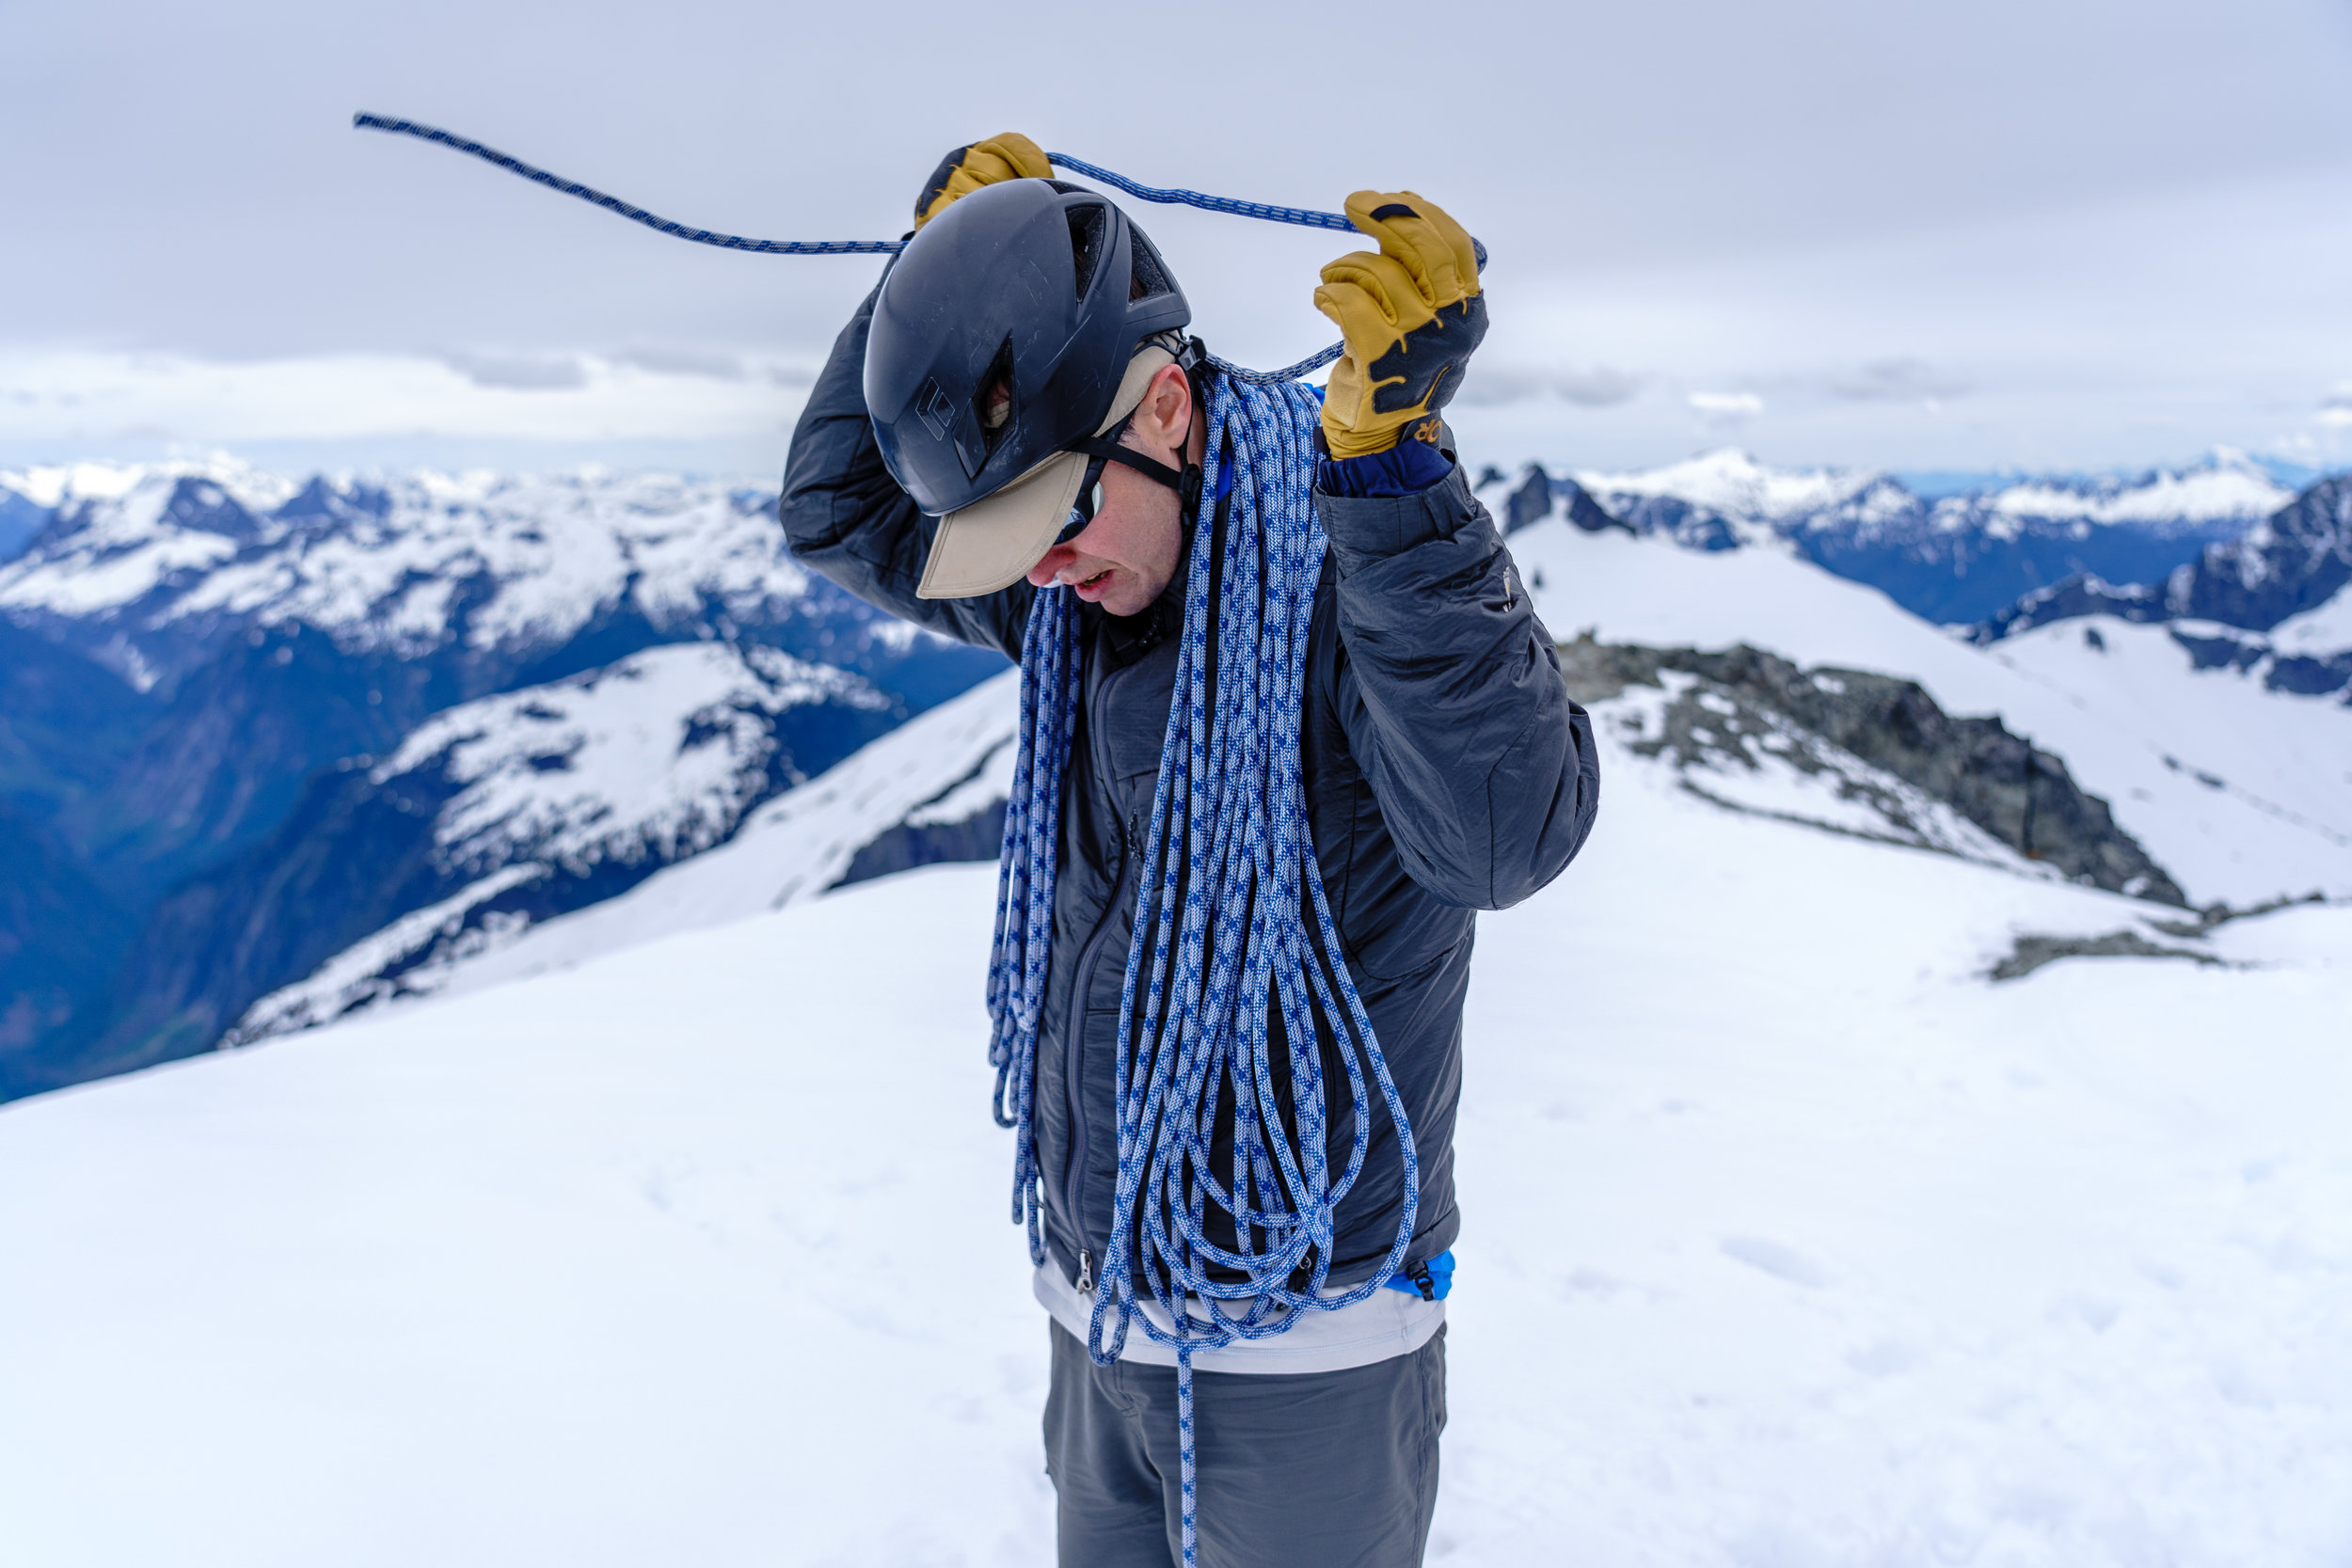 Shawn coiling the rope